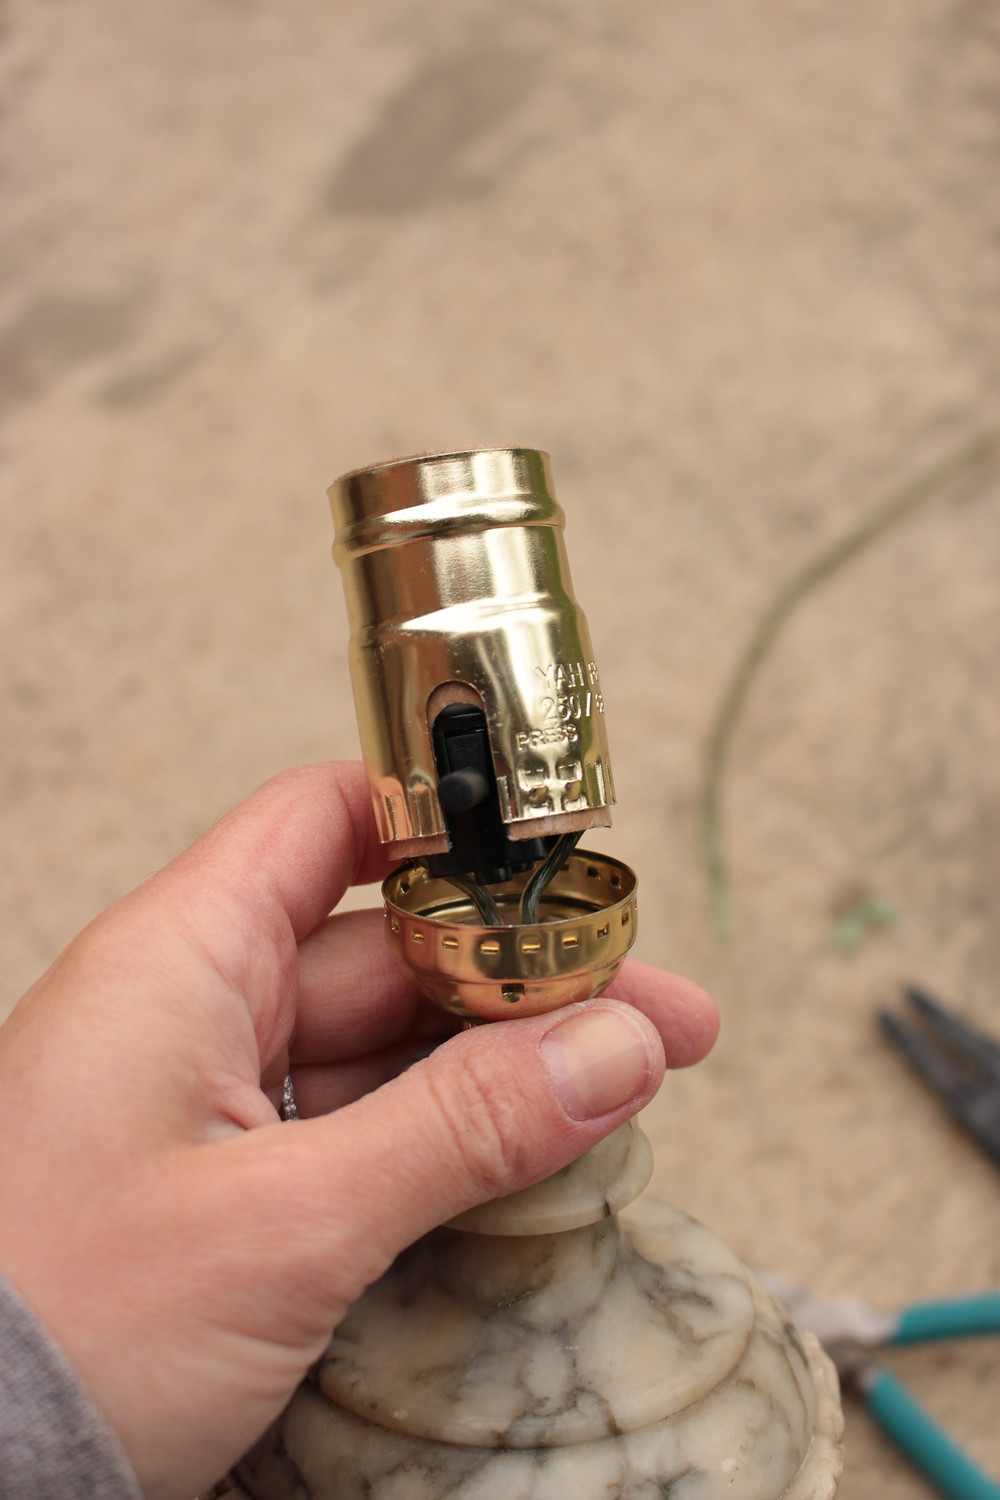 Rewire a Lamp - Tightening Things Up